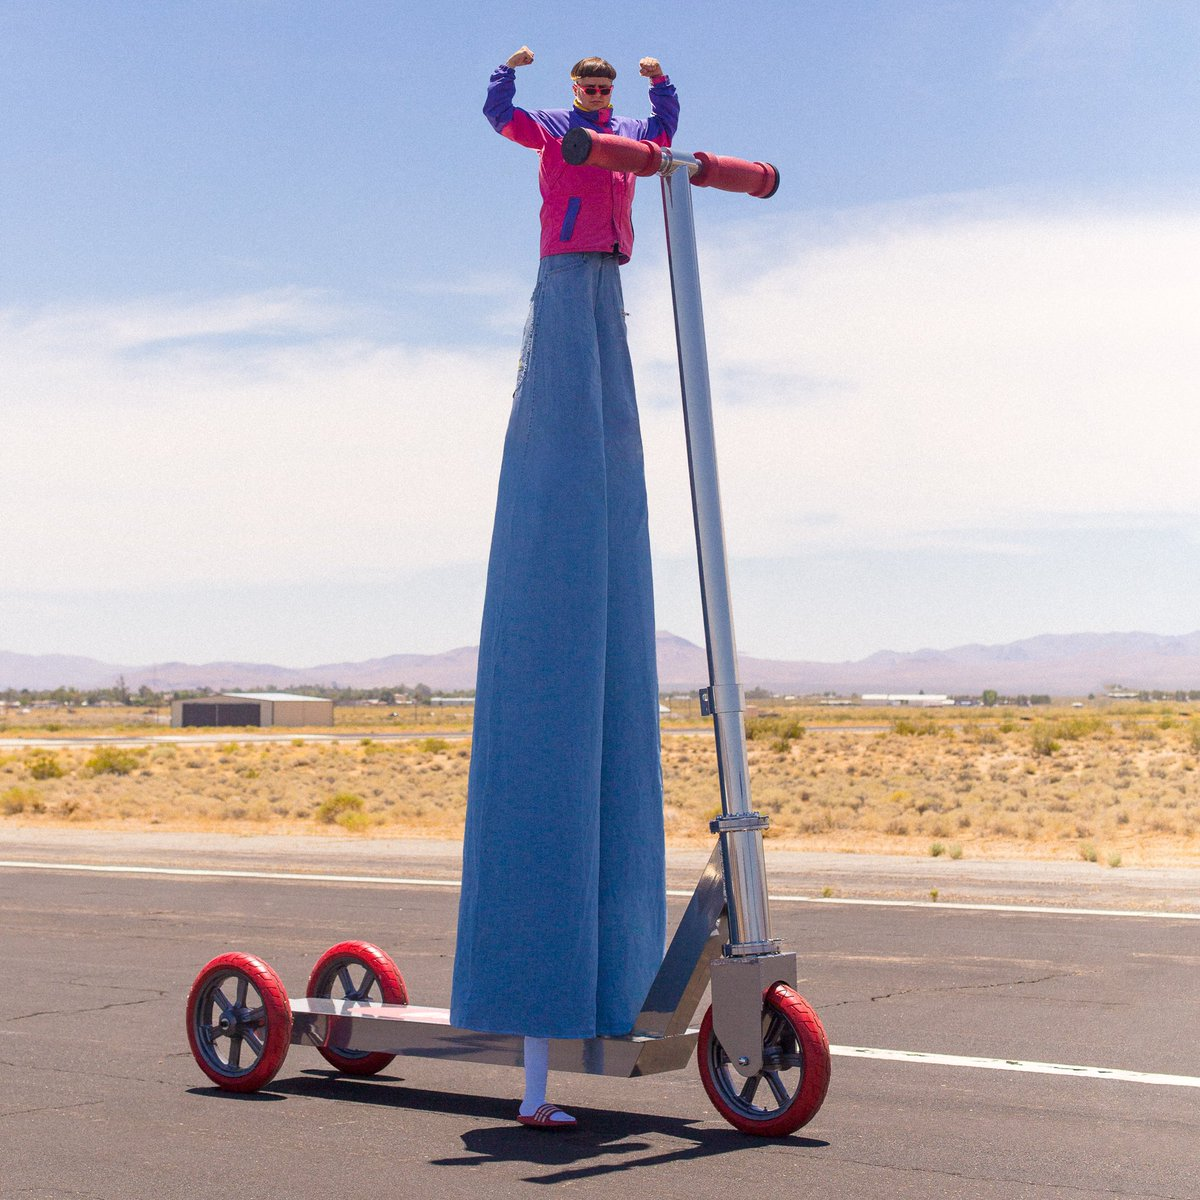 I spent the last few years secretly building the worlds biggest scooter. Here's the deal y'all, if this post hits 500k likes, I'll partner with Guinness World Records & live stream myself attempting to ride this 20ft scooter half a mile. Twitter do your thing https://t.co/OWNmlDCbj9